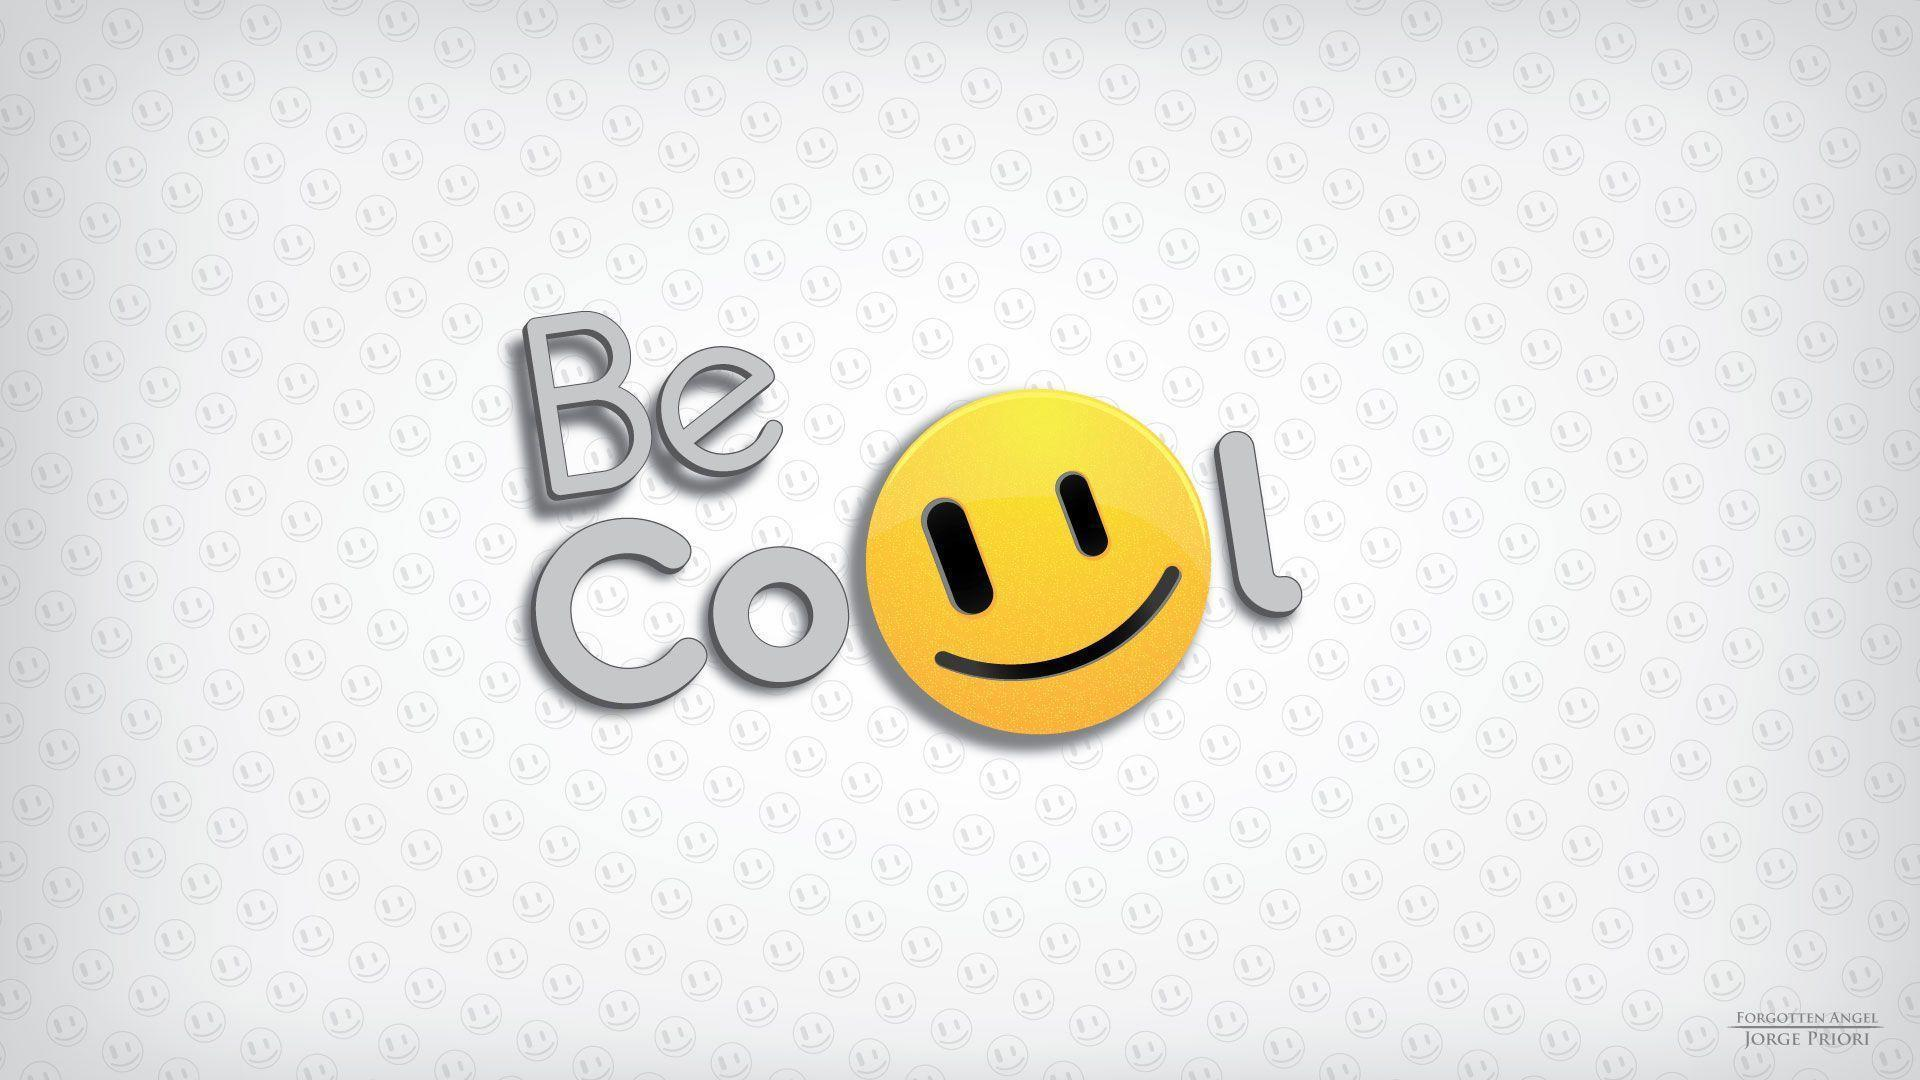 Be Cool Smile for Desktop Backgrounds Hd Wallpapers 1920x1080PX